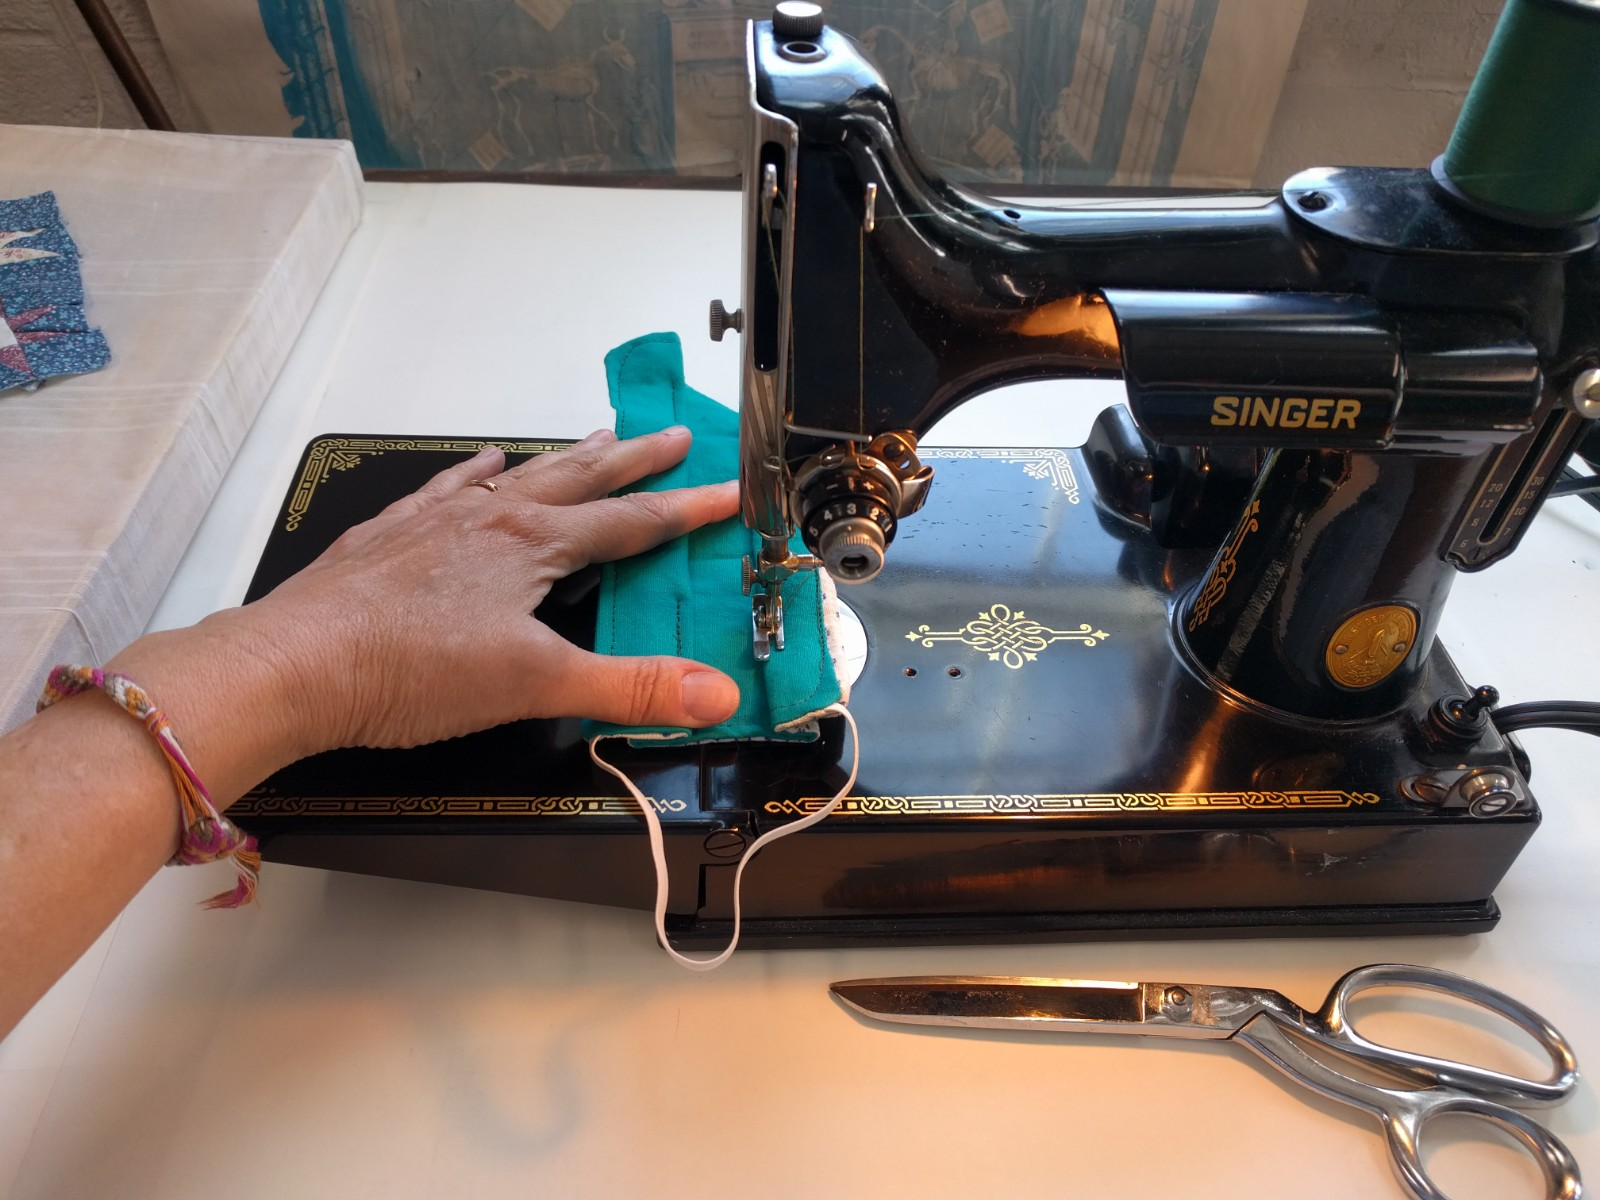 A mask being sewn on an old fashioned sewing machine.